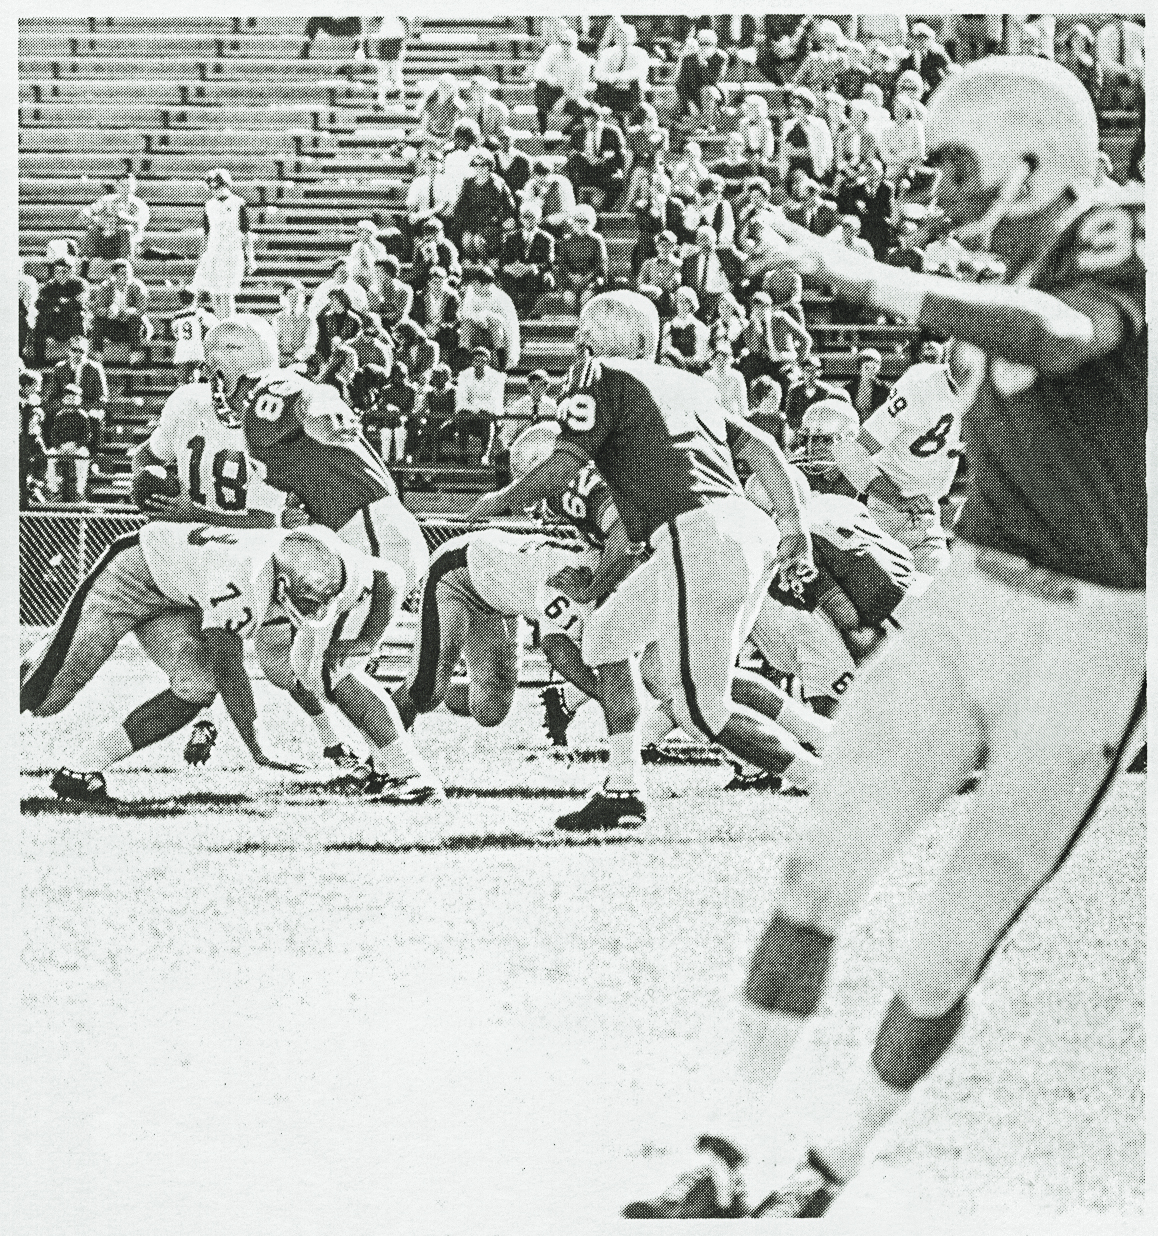 Football game from 1969